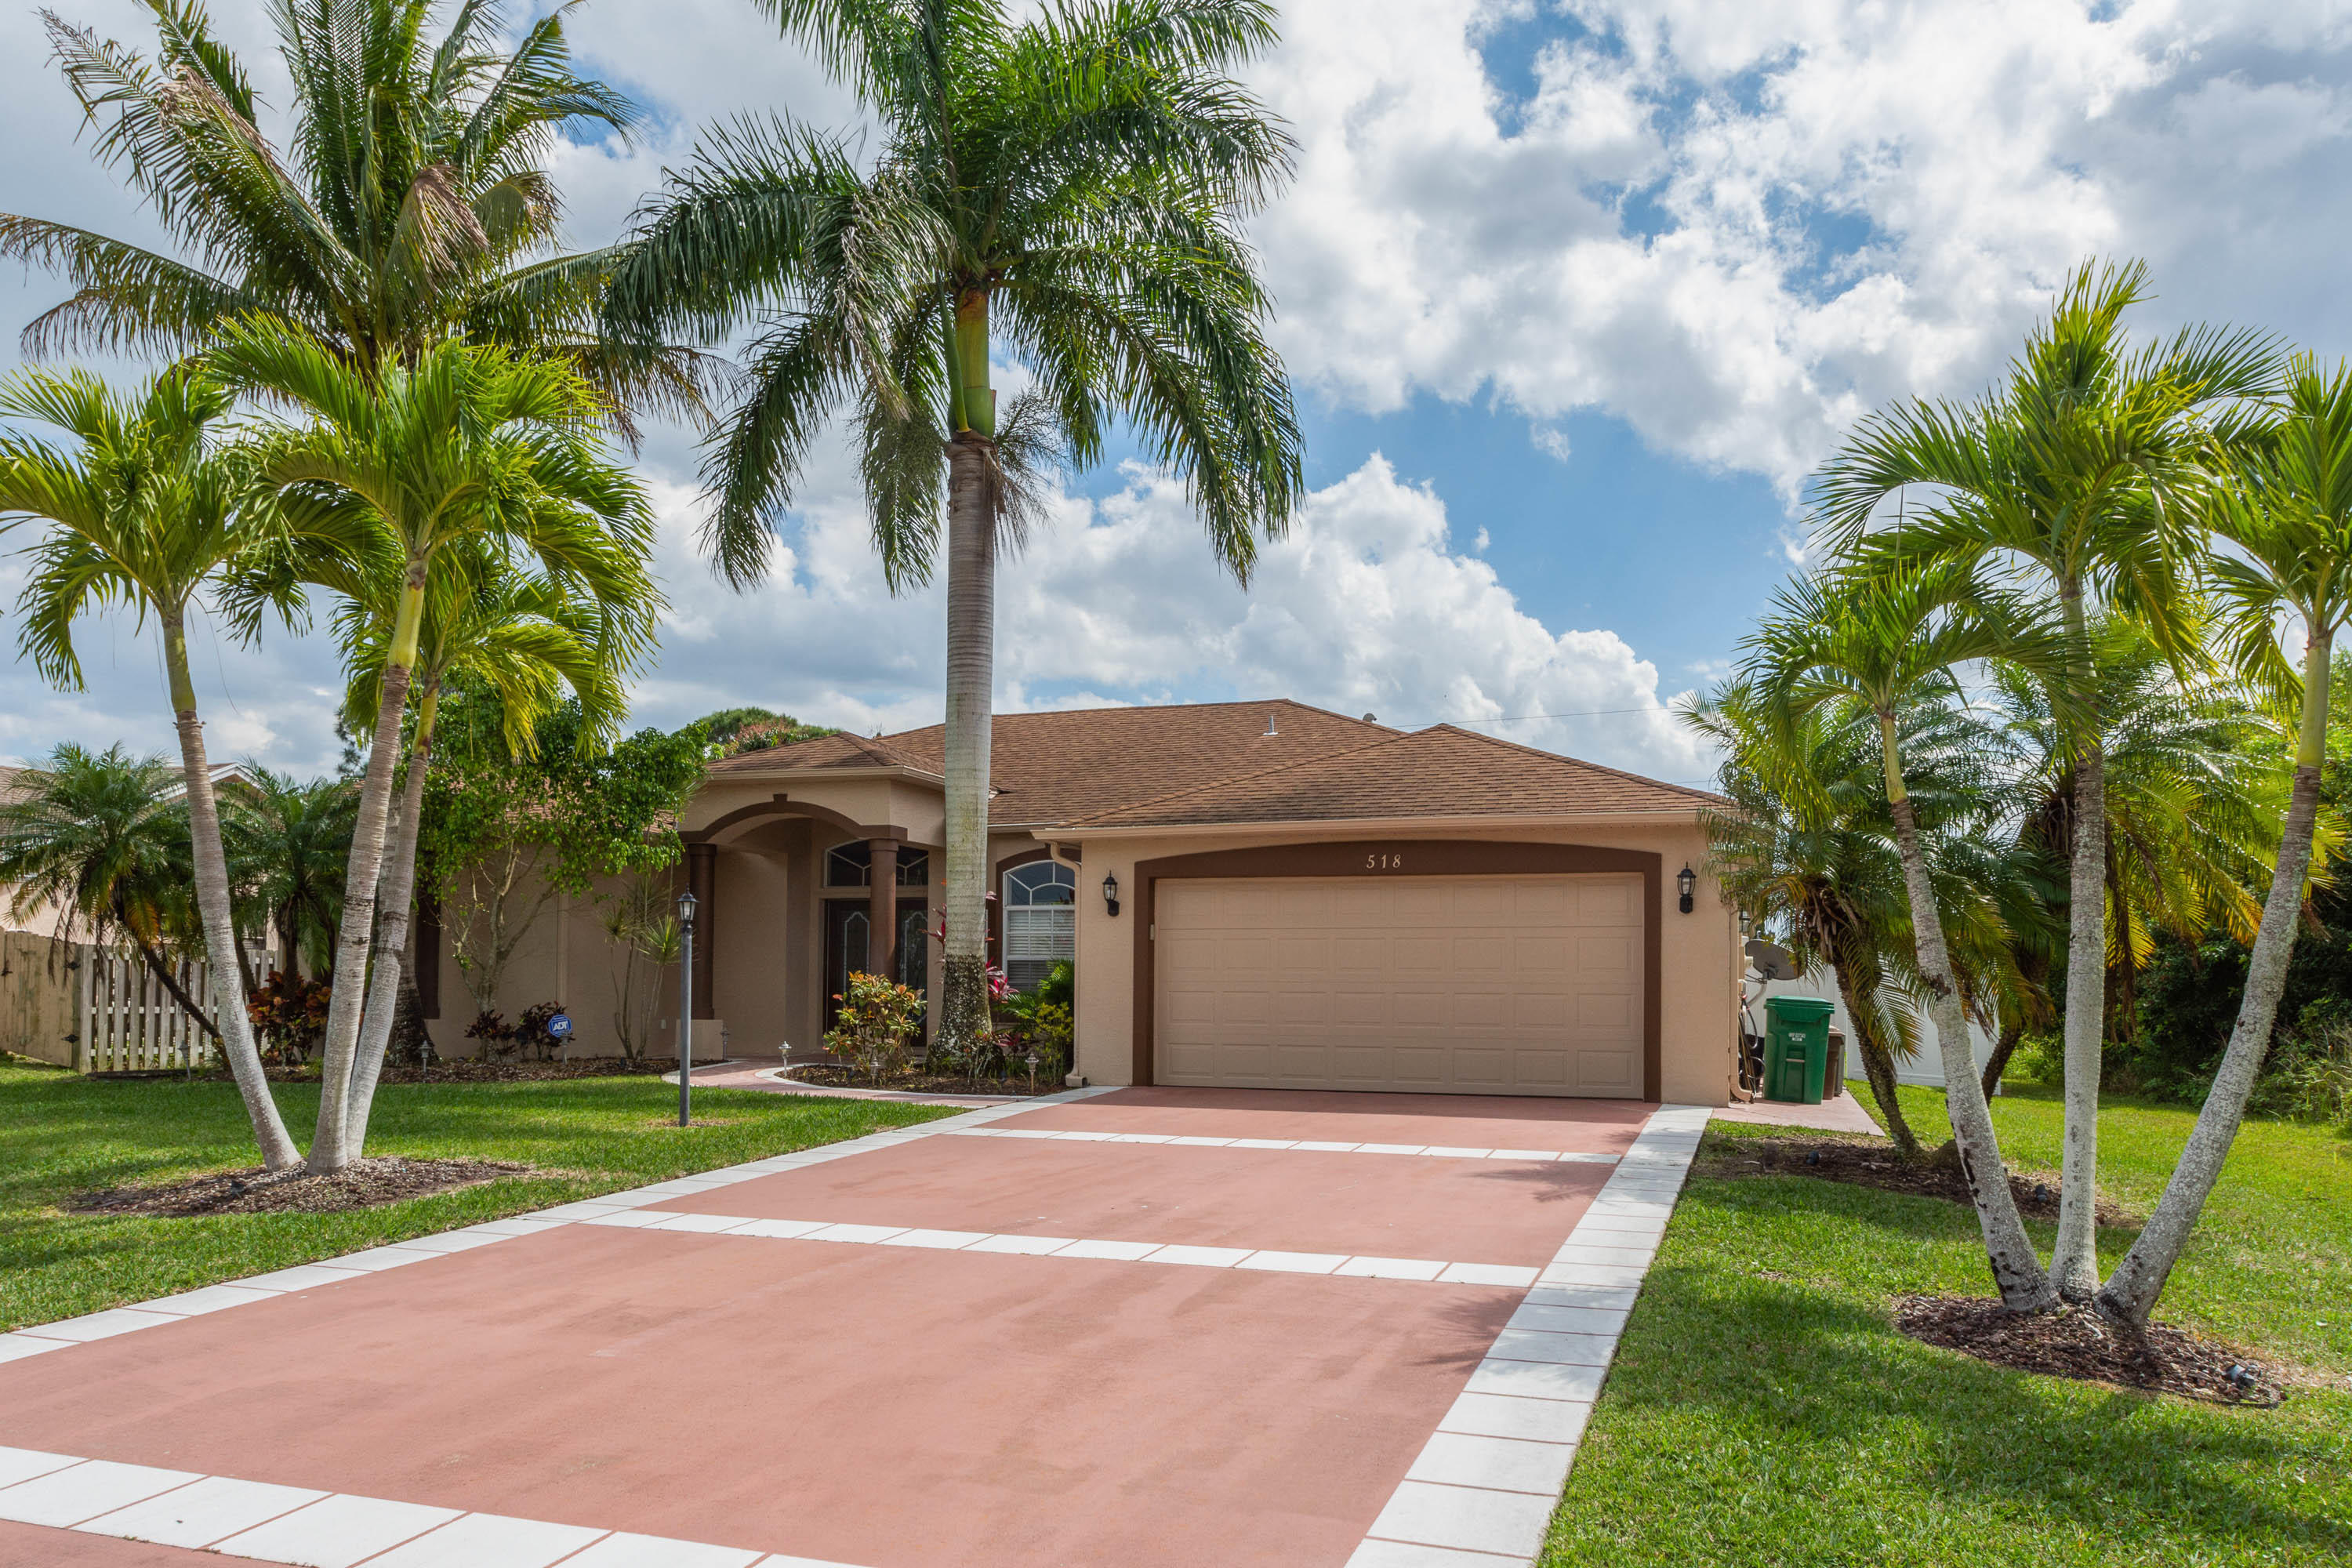 Home for sale in port st lucie section 4 Port Saint Lucie Florida